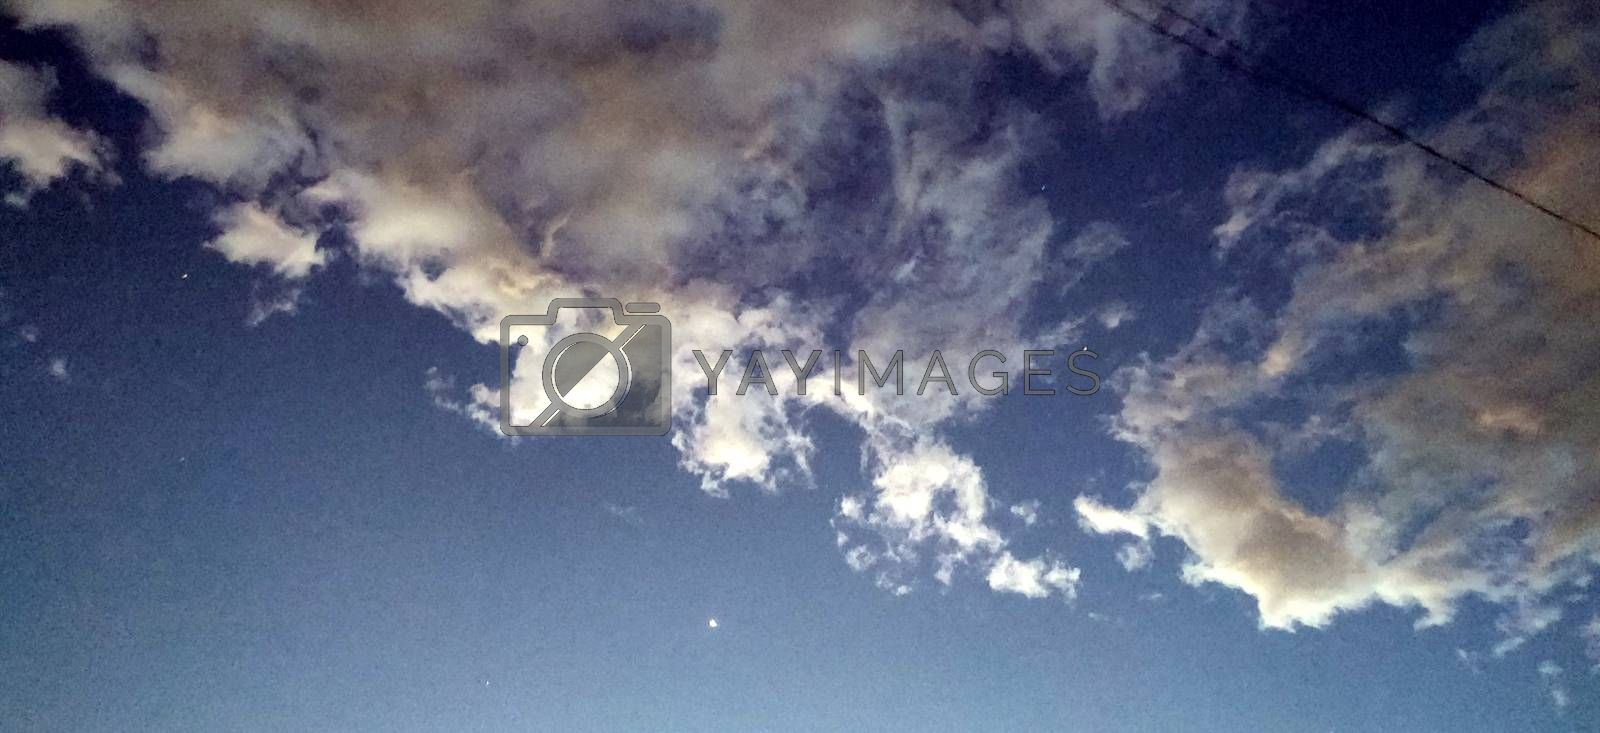 Royalty free image of The twilight sky and the reddish clouds by mshivangi92